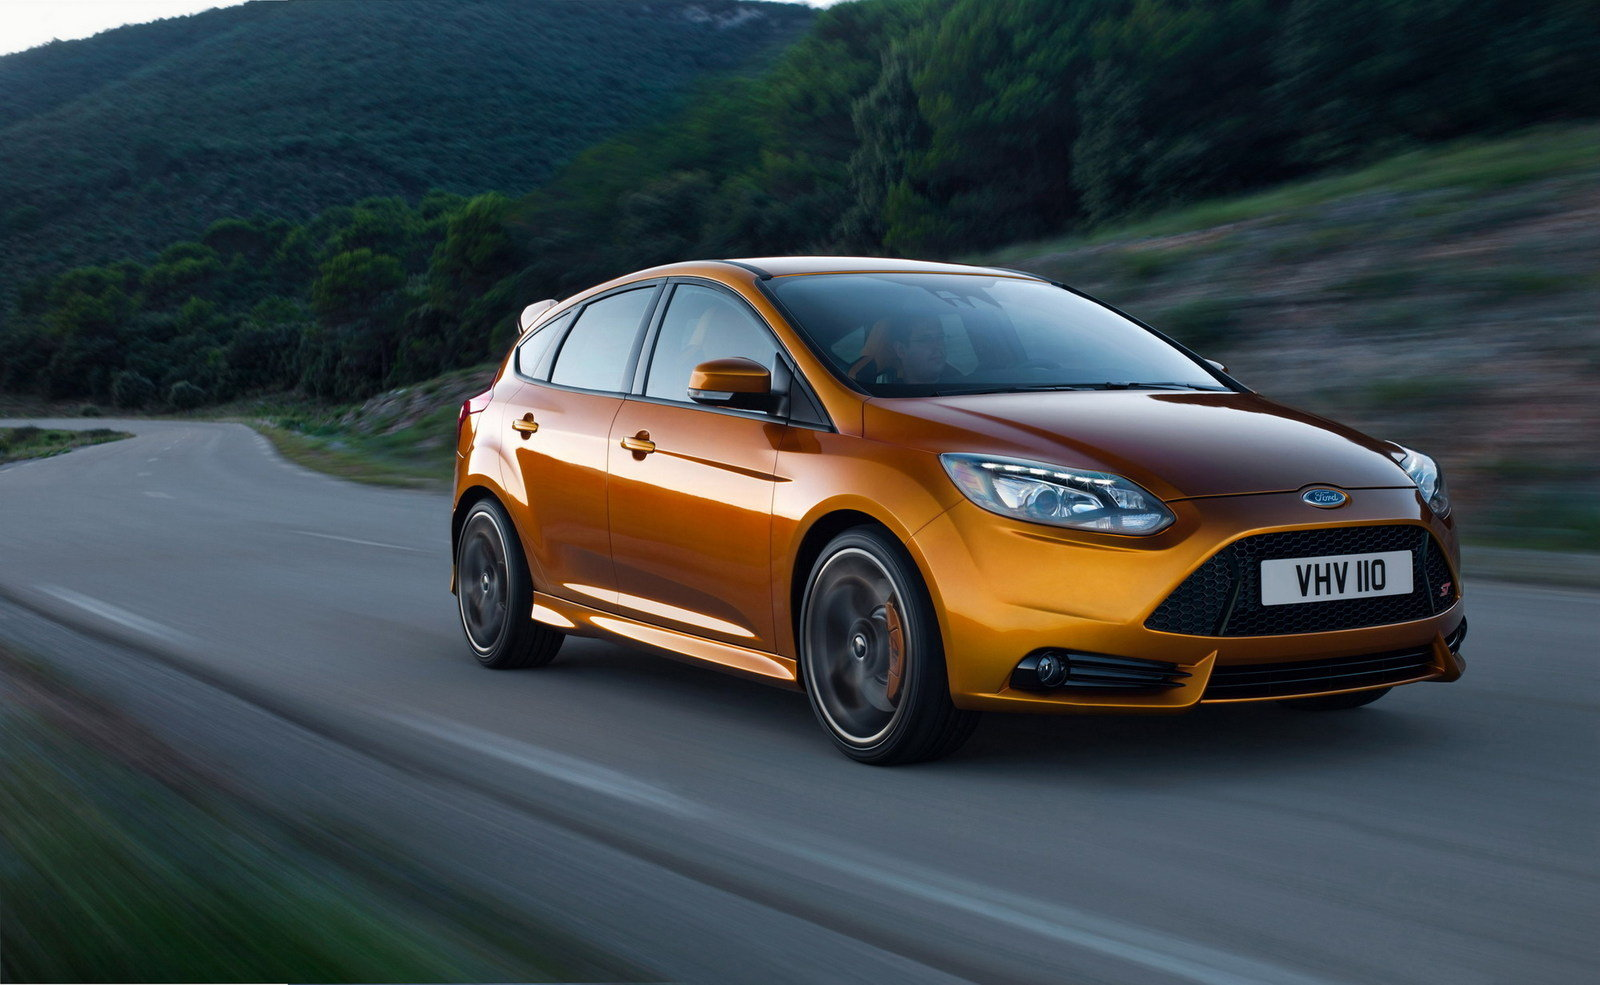 2011 ford focus st picture 375891 car review top speed. Black Bedroom Furniture Sets. Home Design Ideas